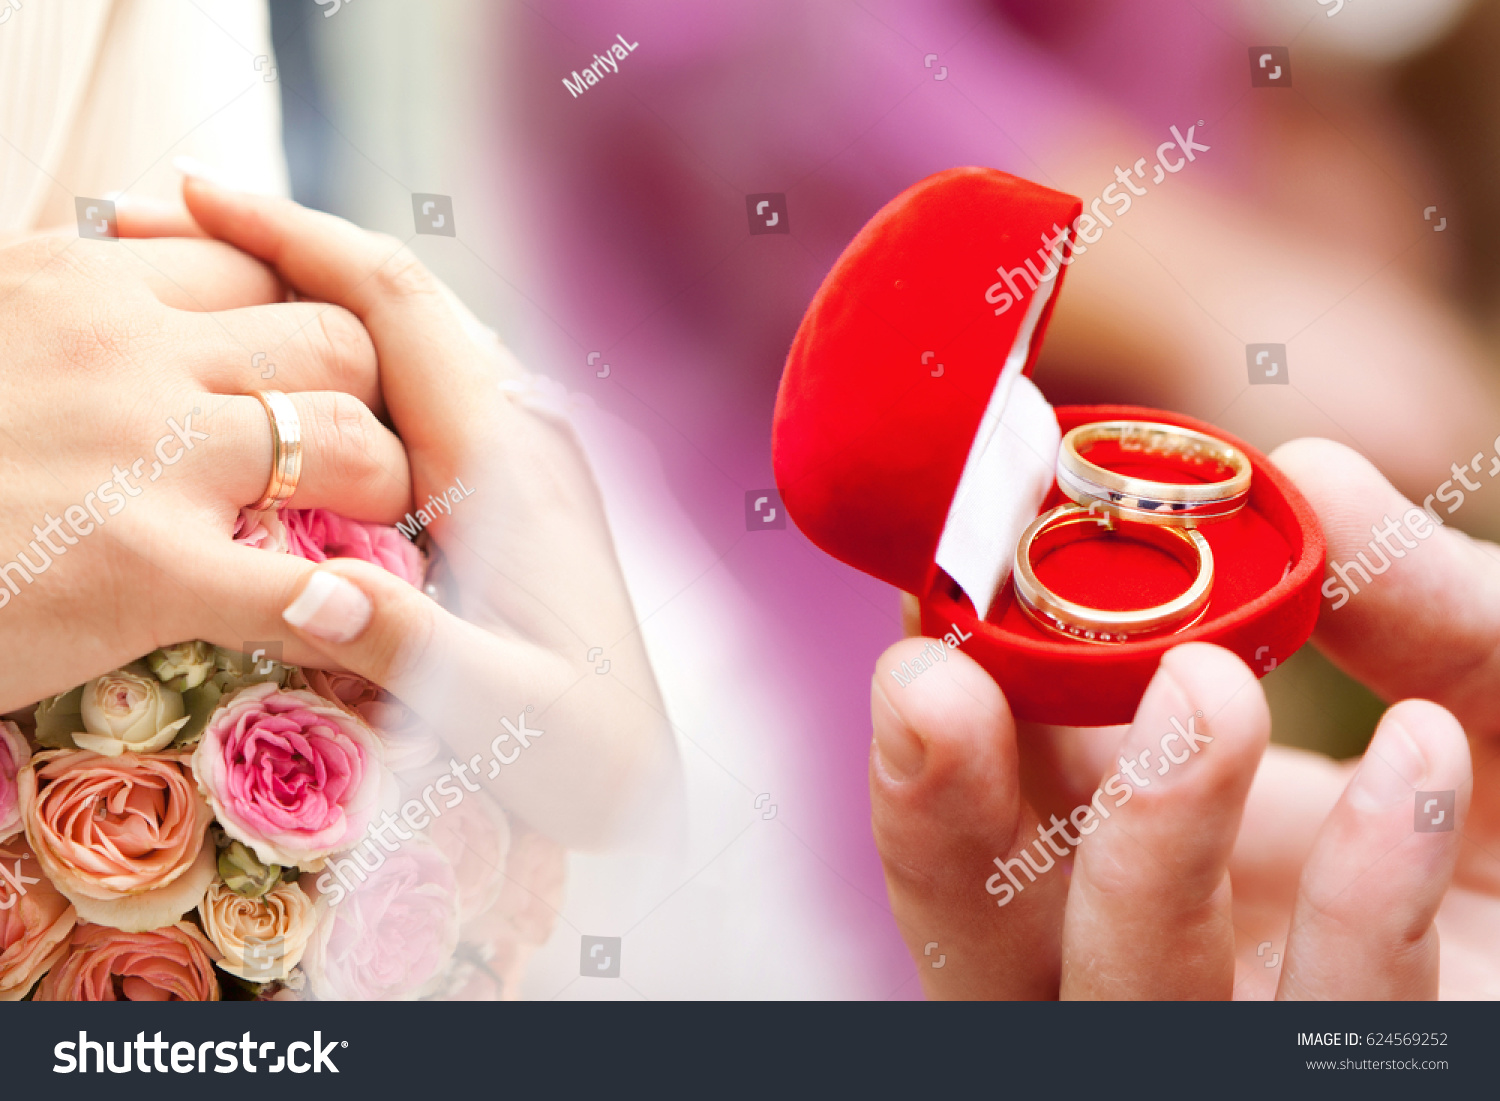 Wedding Background Hands Golden Rings Red Stock Photo (100% Legal ...